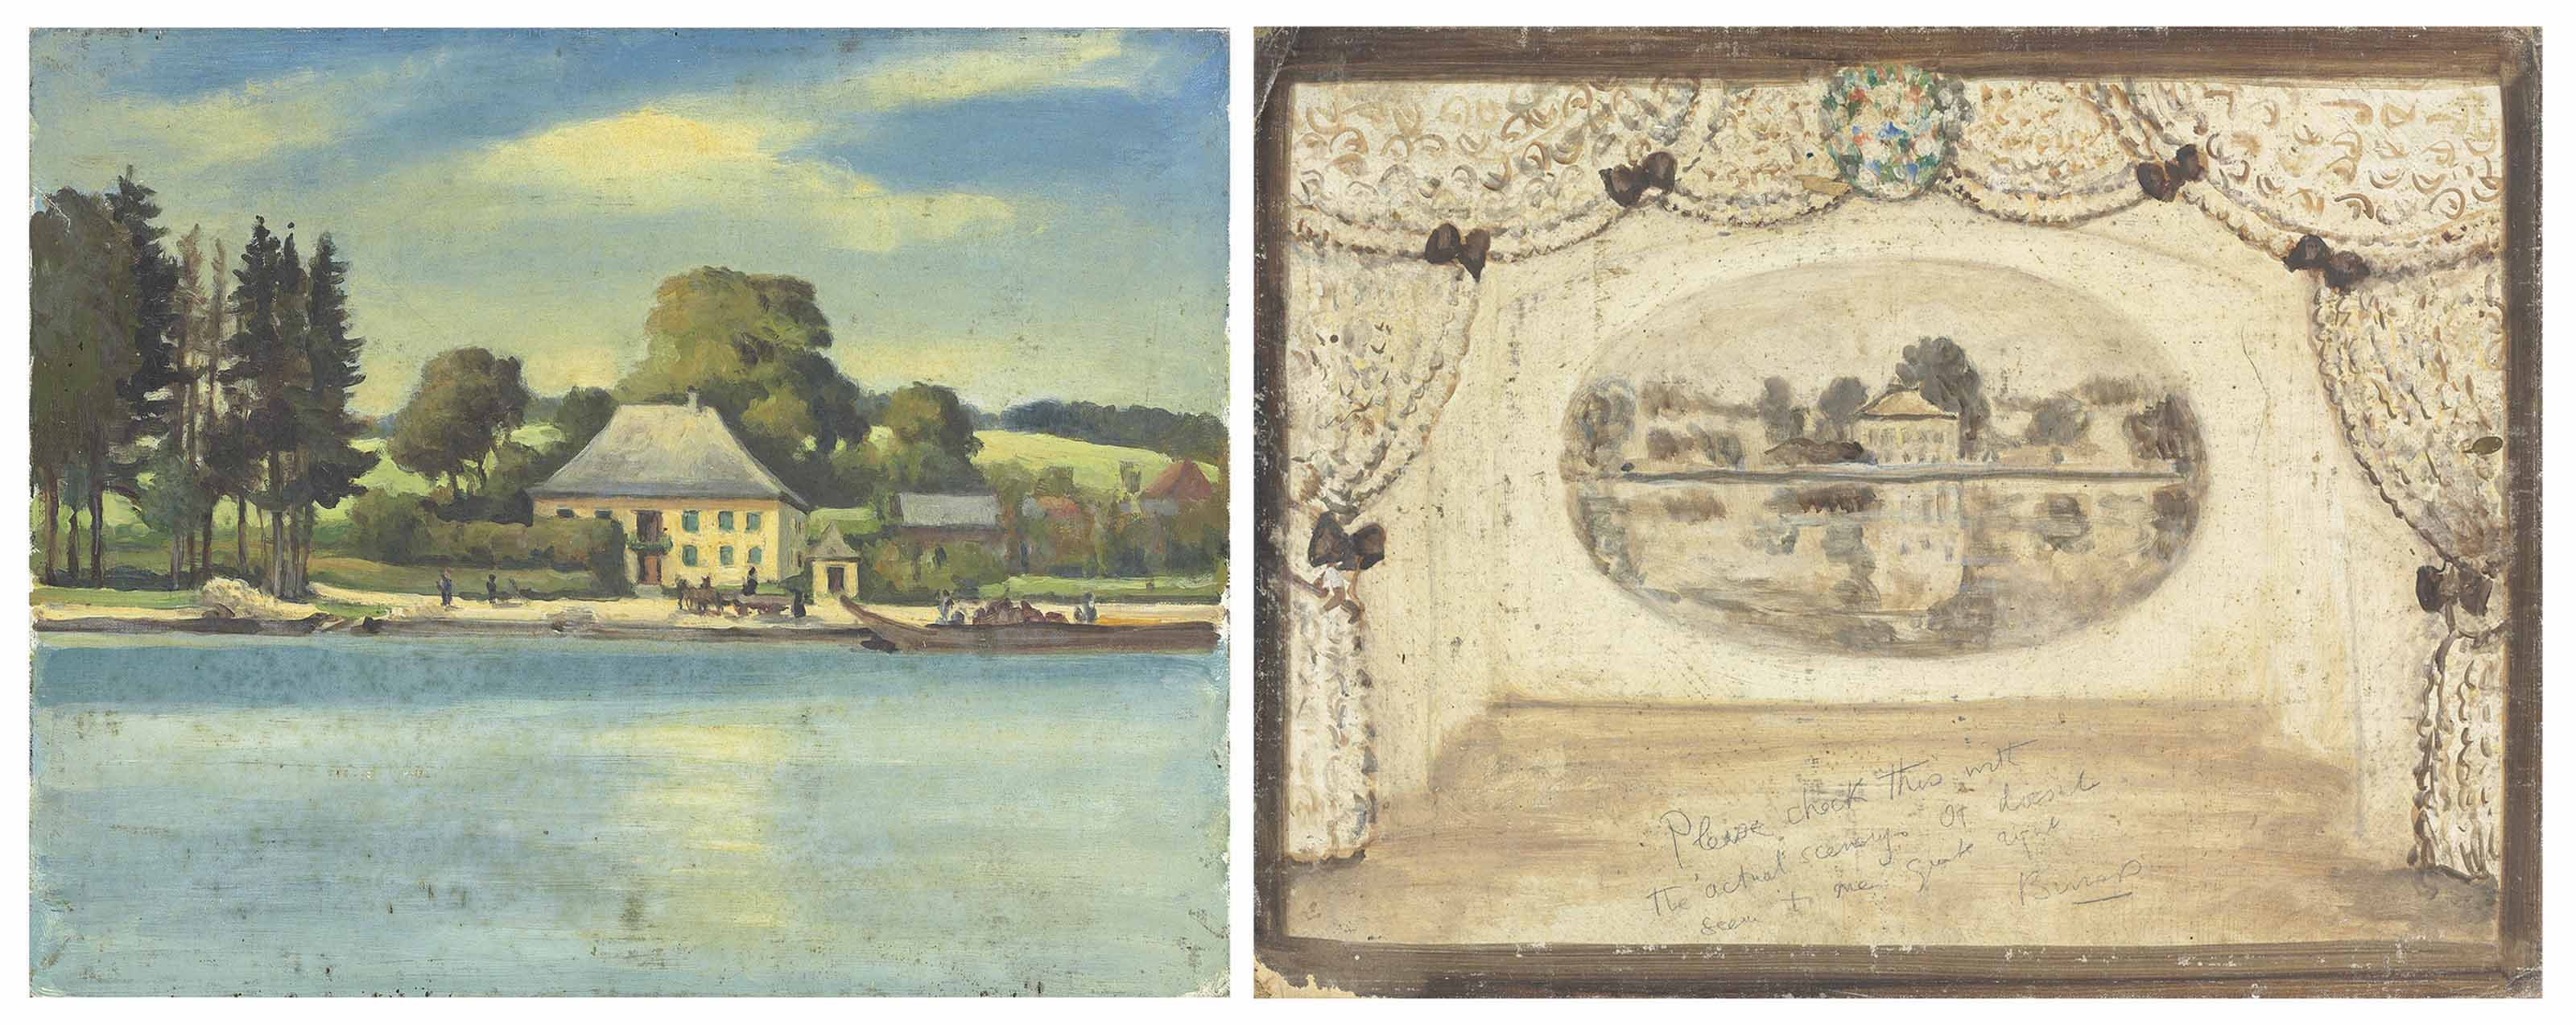 A river scene in the Auvergne used as a backdrop in 'A Wedding Bouquet'; and a design for the backdrop of 'A Wedding Bouquet'